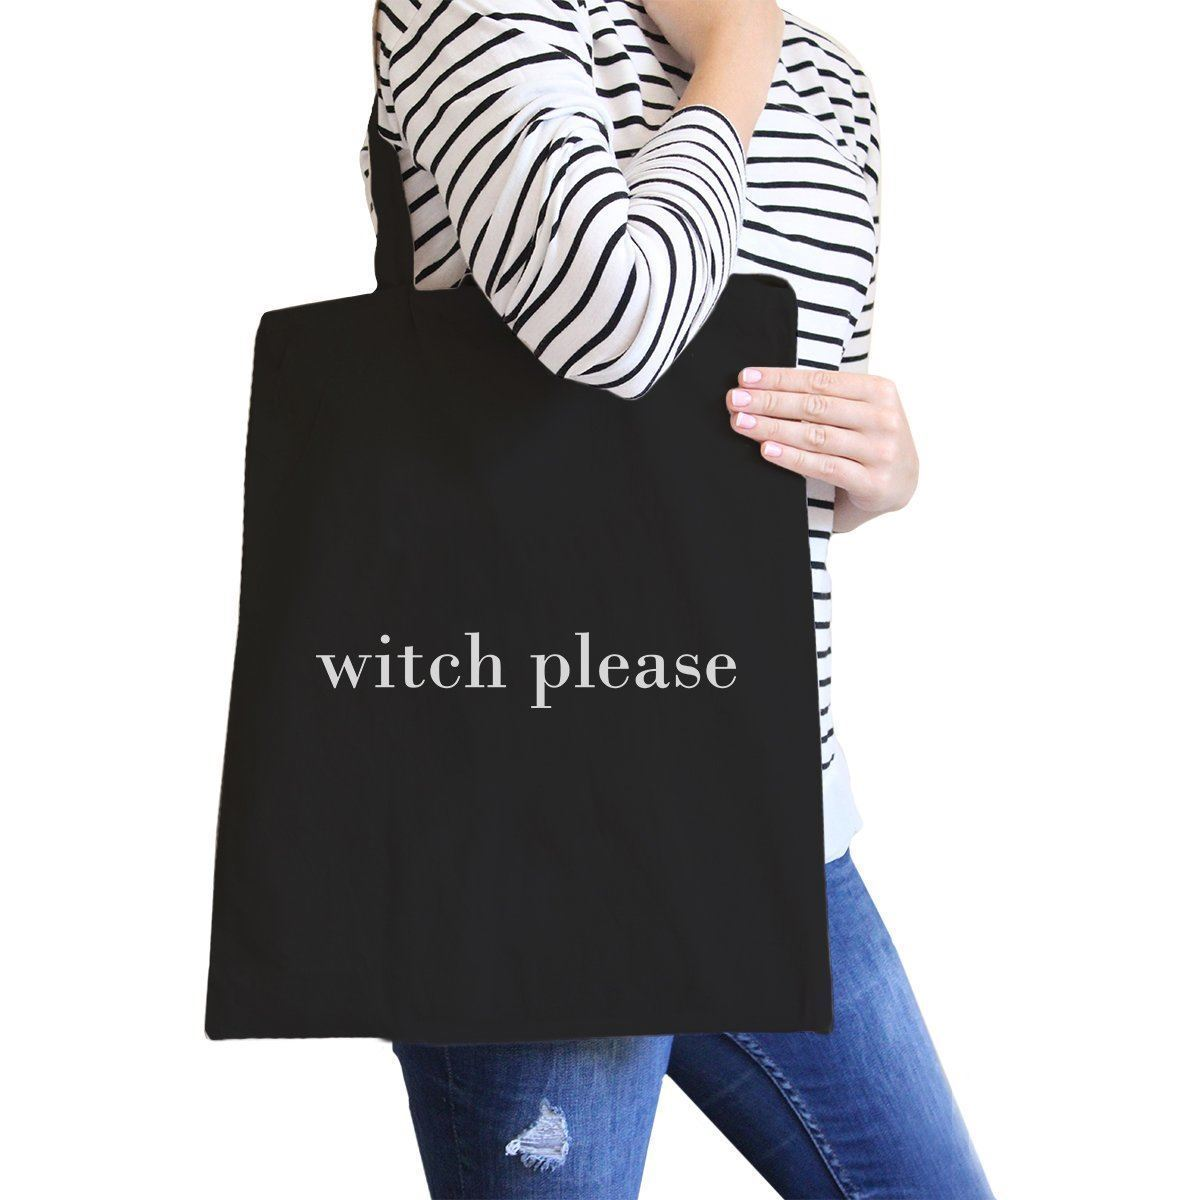 Primary image for Witch Please Black Canvas Bags